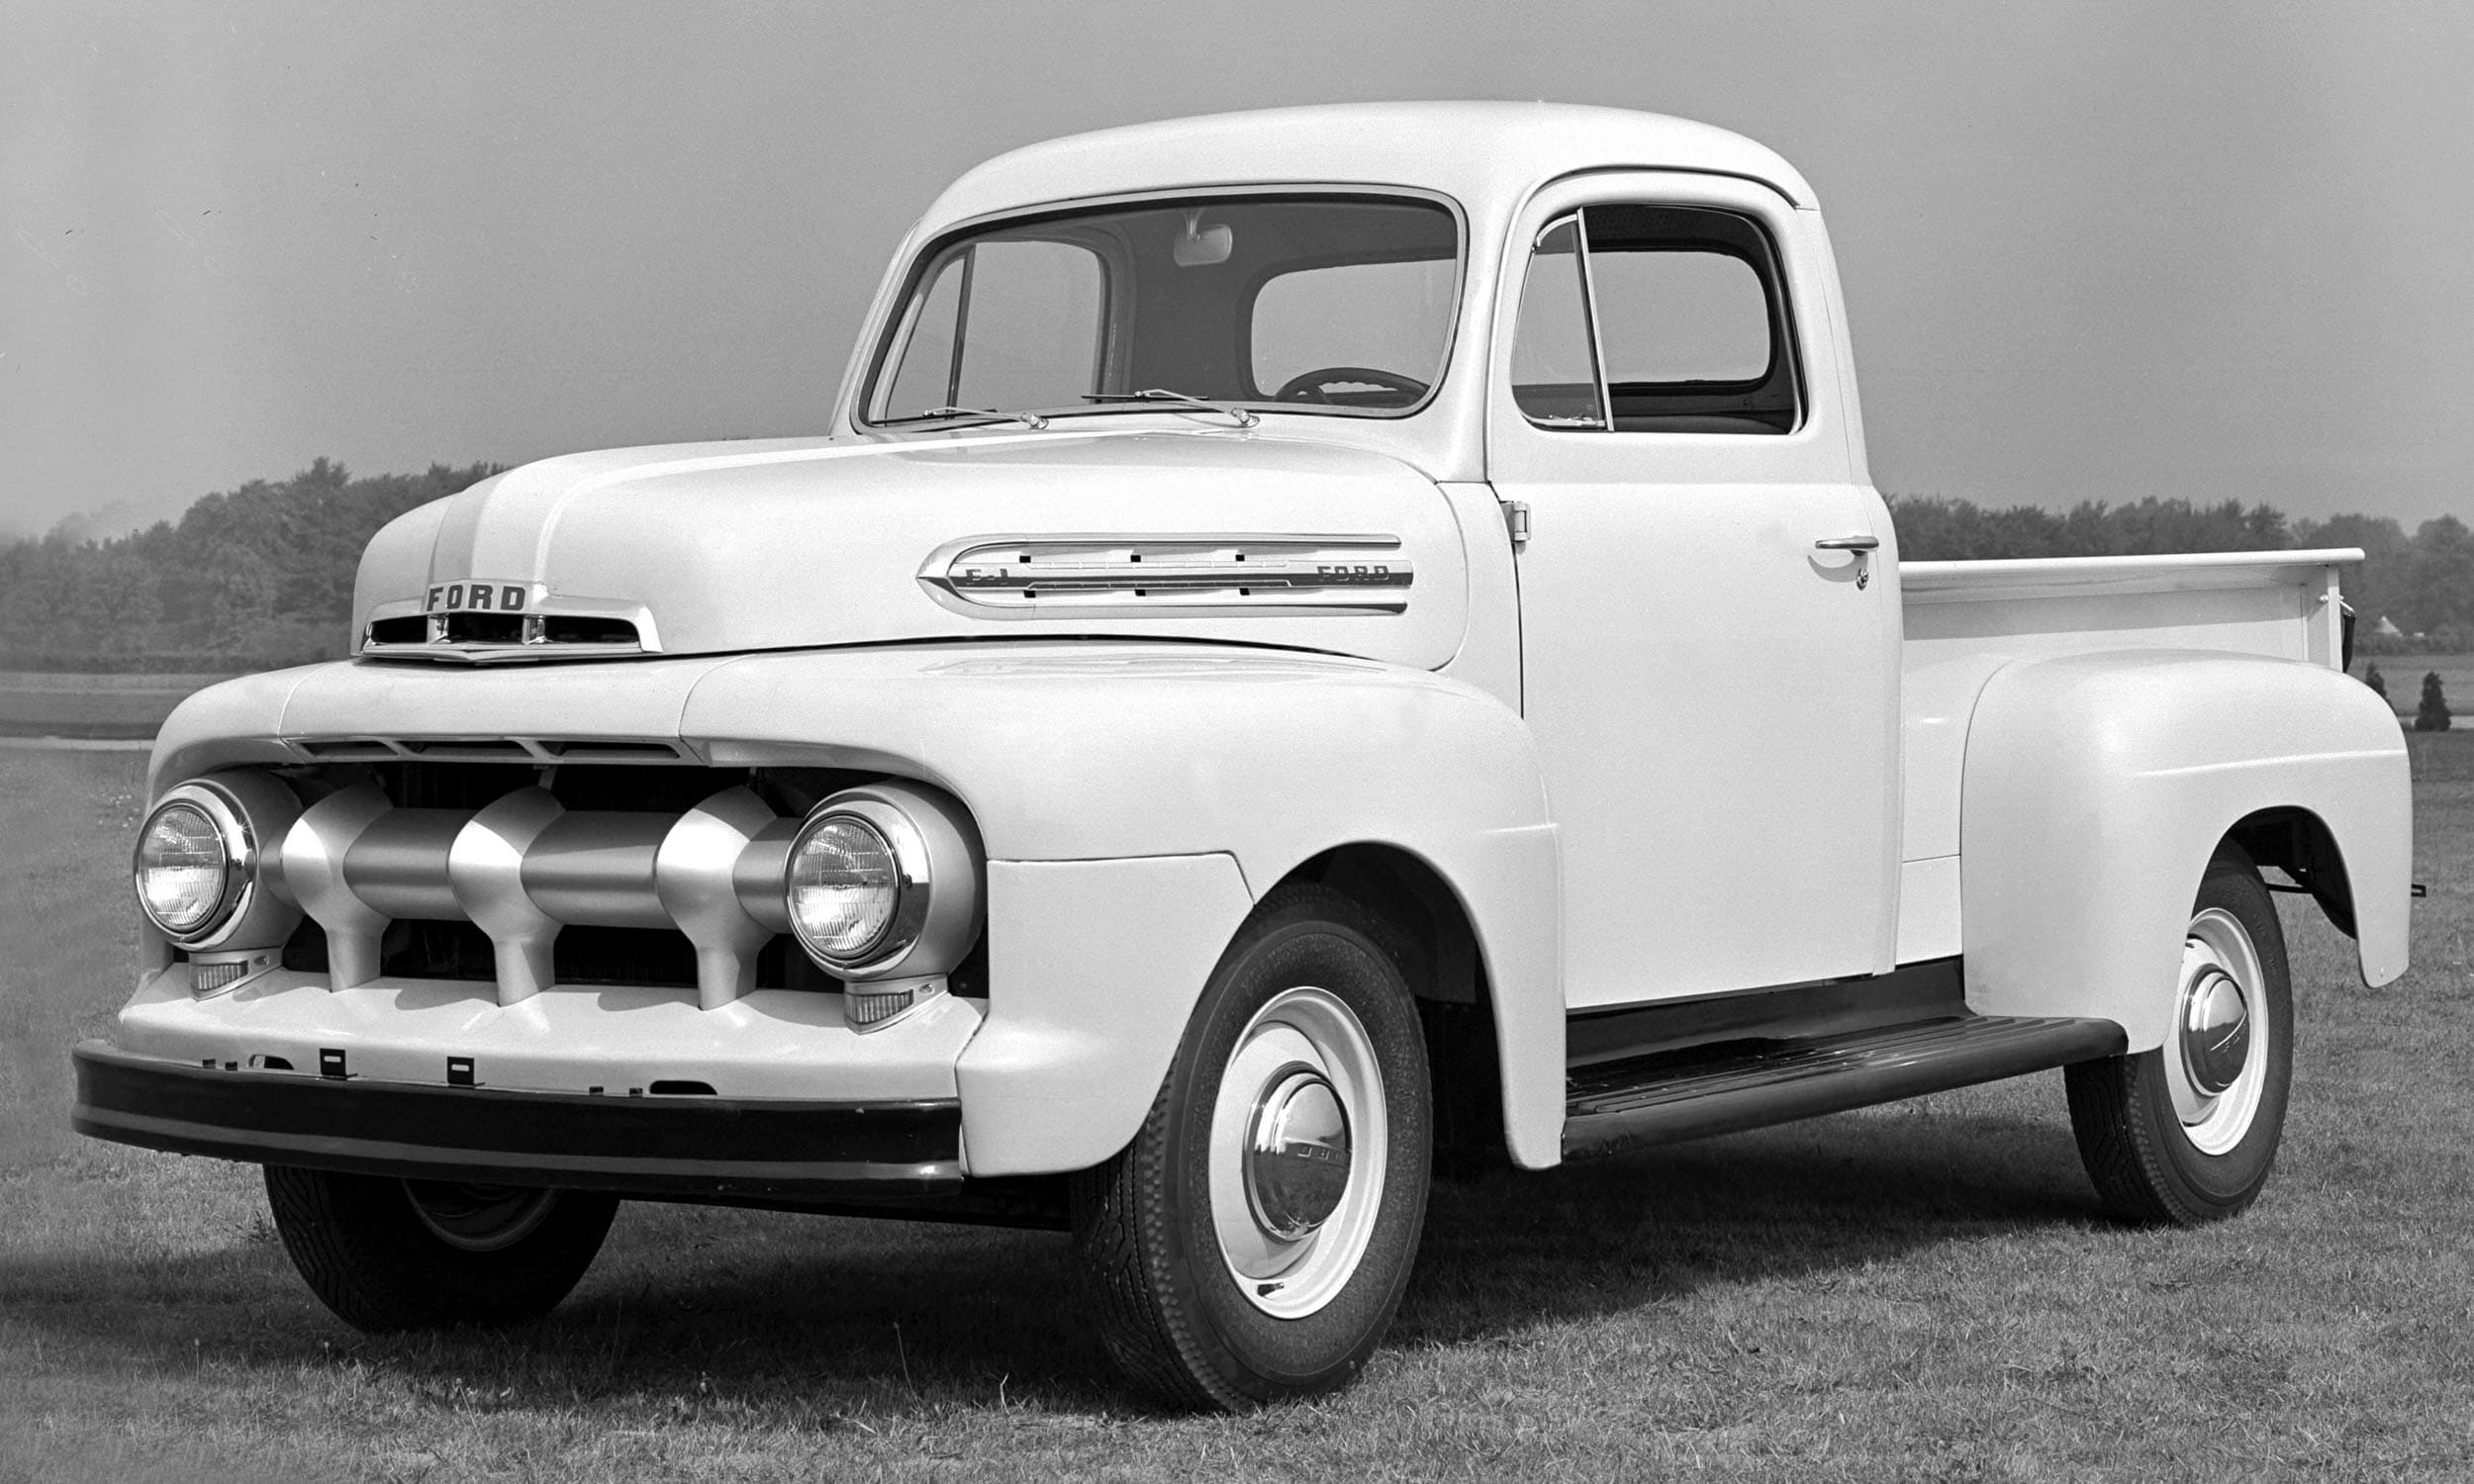 70 years on - Ford's iconic F-150 continues to move the ...